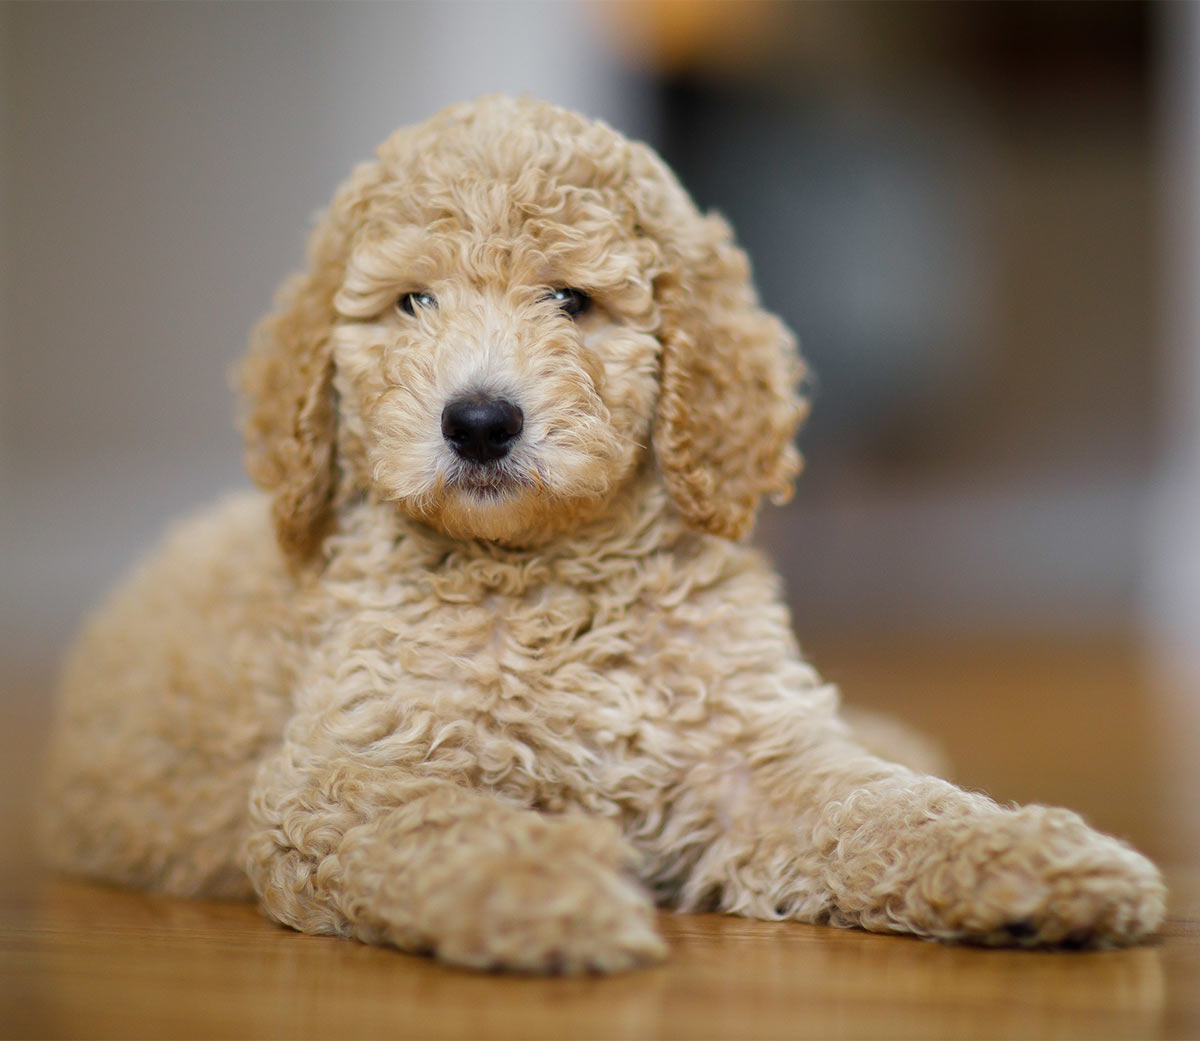 Toy Poodle - All About The World's Cutest, Curliest Dog Breed